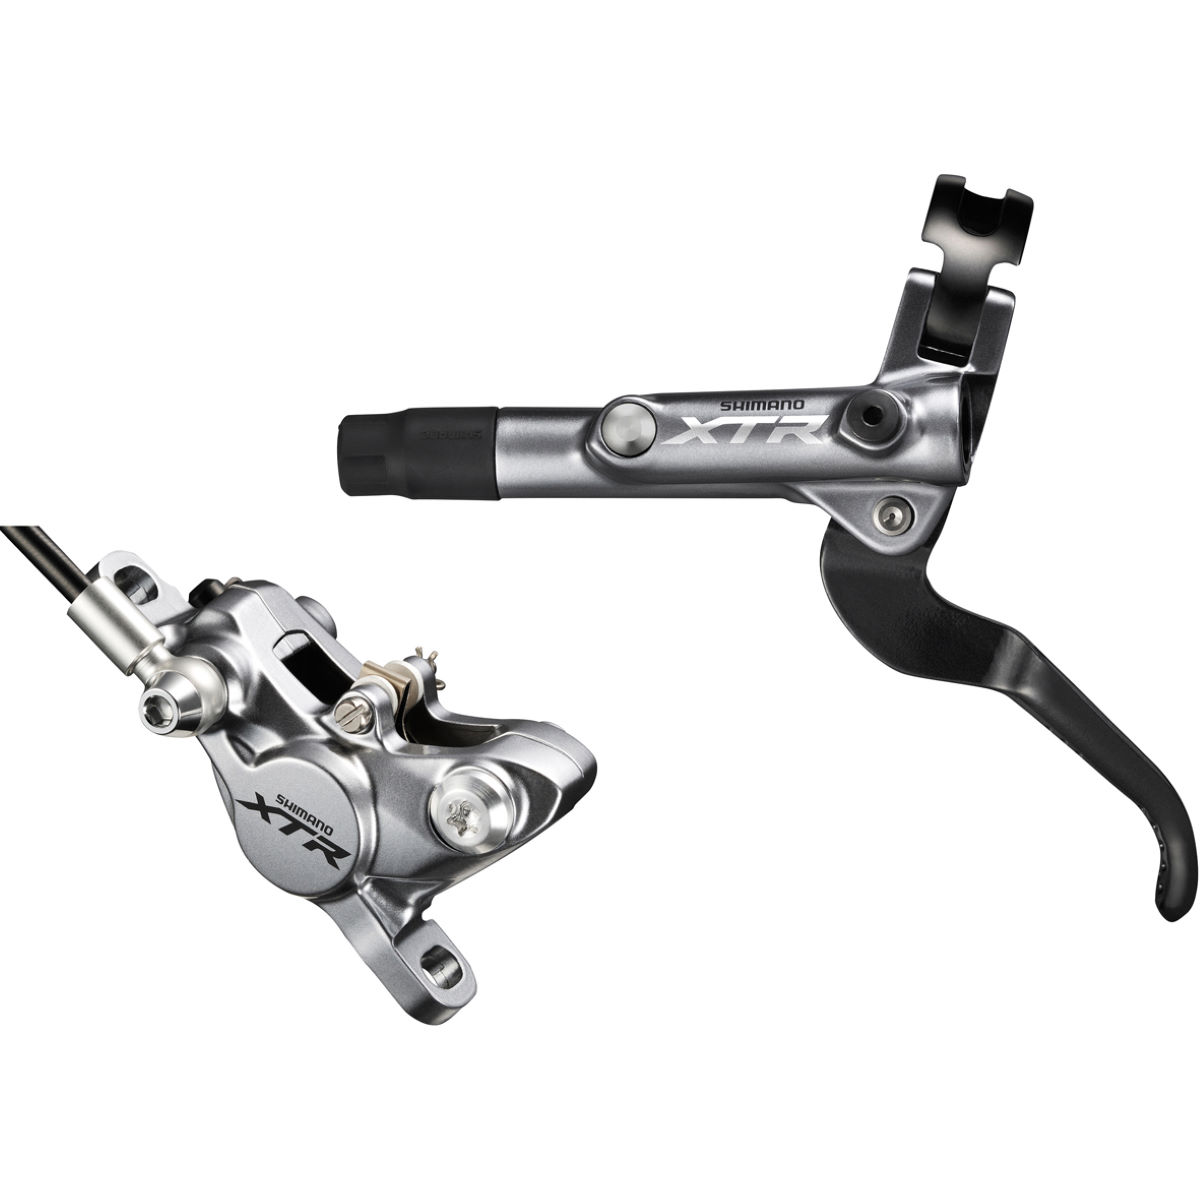 Shimano XTR M987 XC Disc Brake Lever and PM Caliper